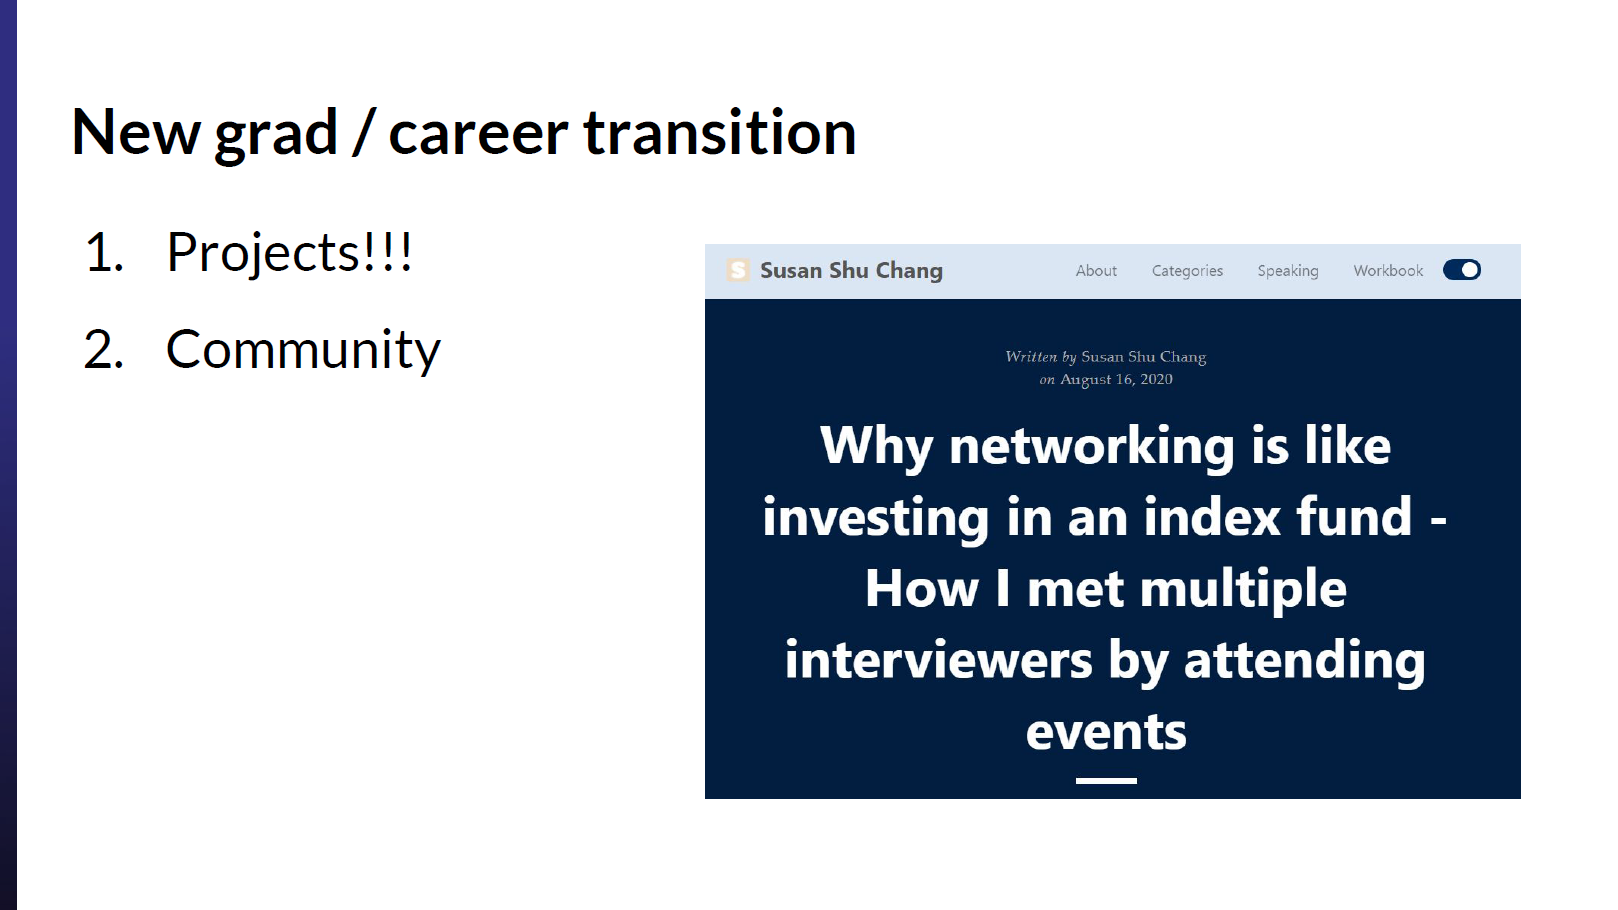 Finding a data science job as a new grad: Attending conferences and events.